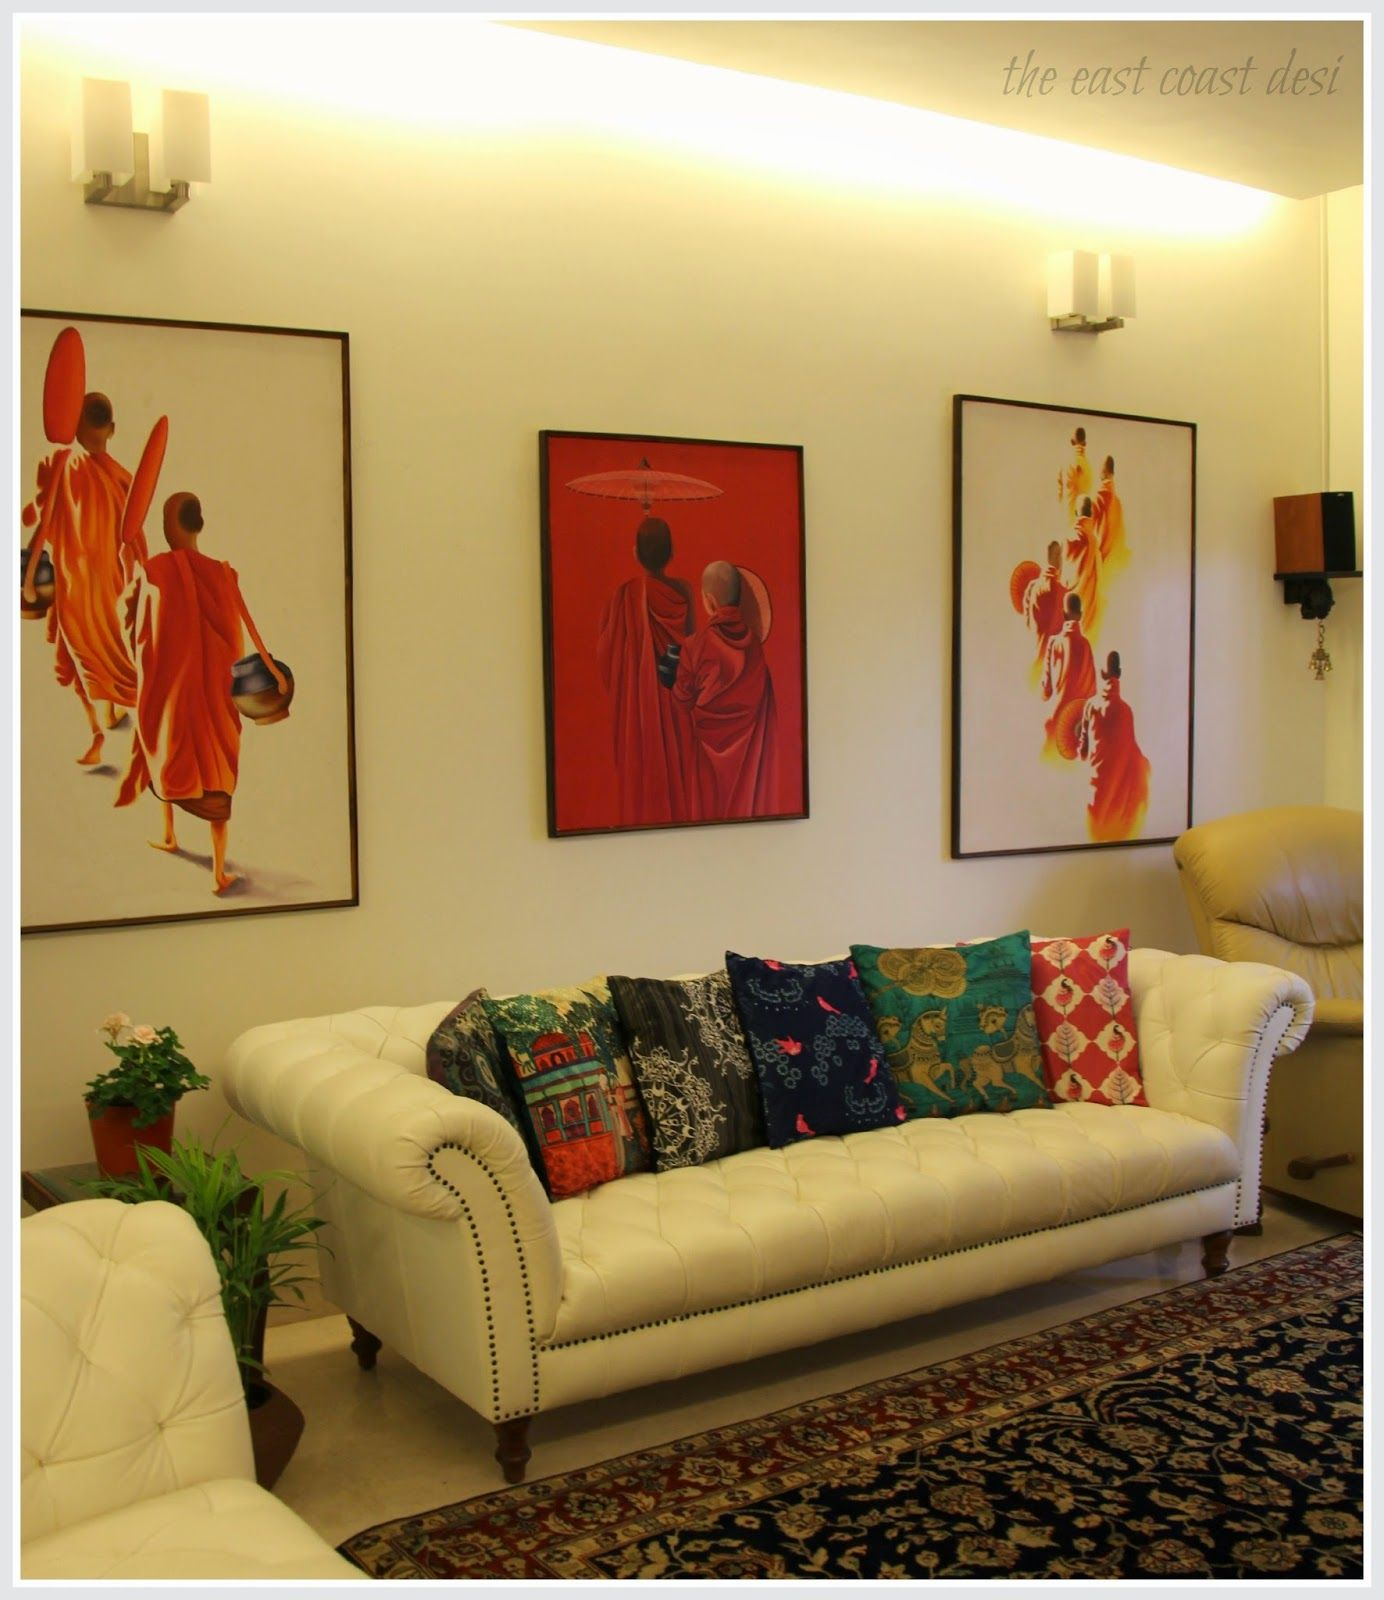 India Circus cushion covers, patterned rugs and paintings of monks ...